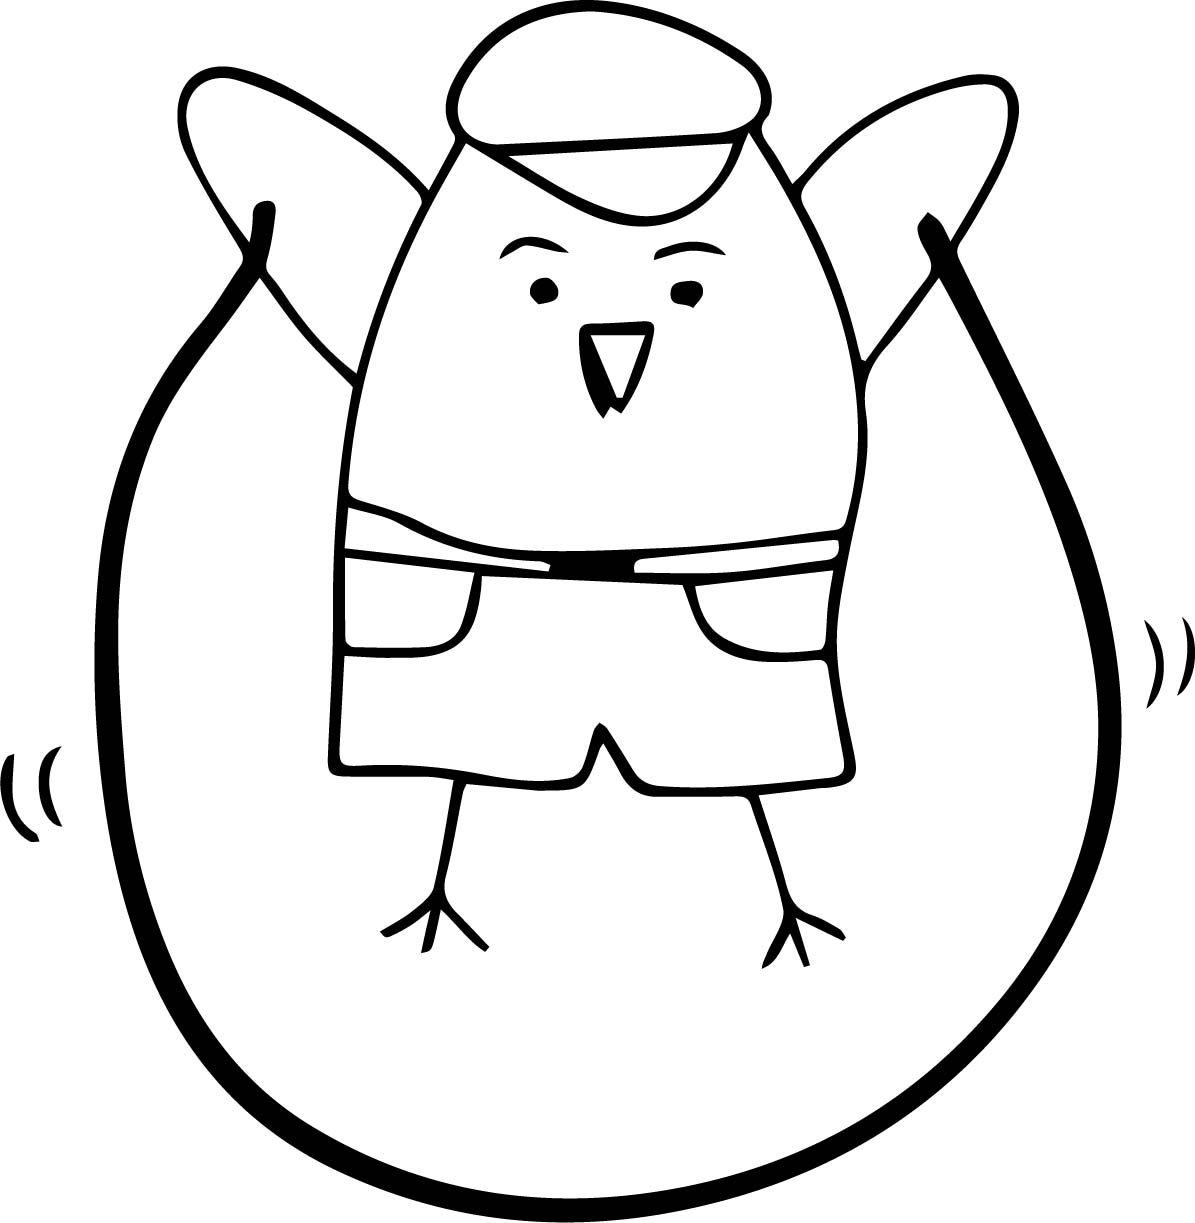 To Jump Rope Bird Coloring Page